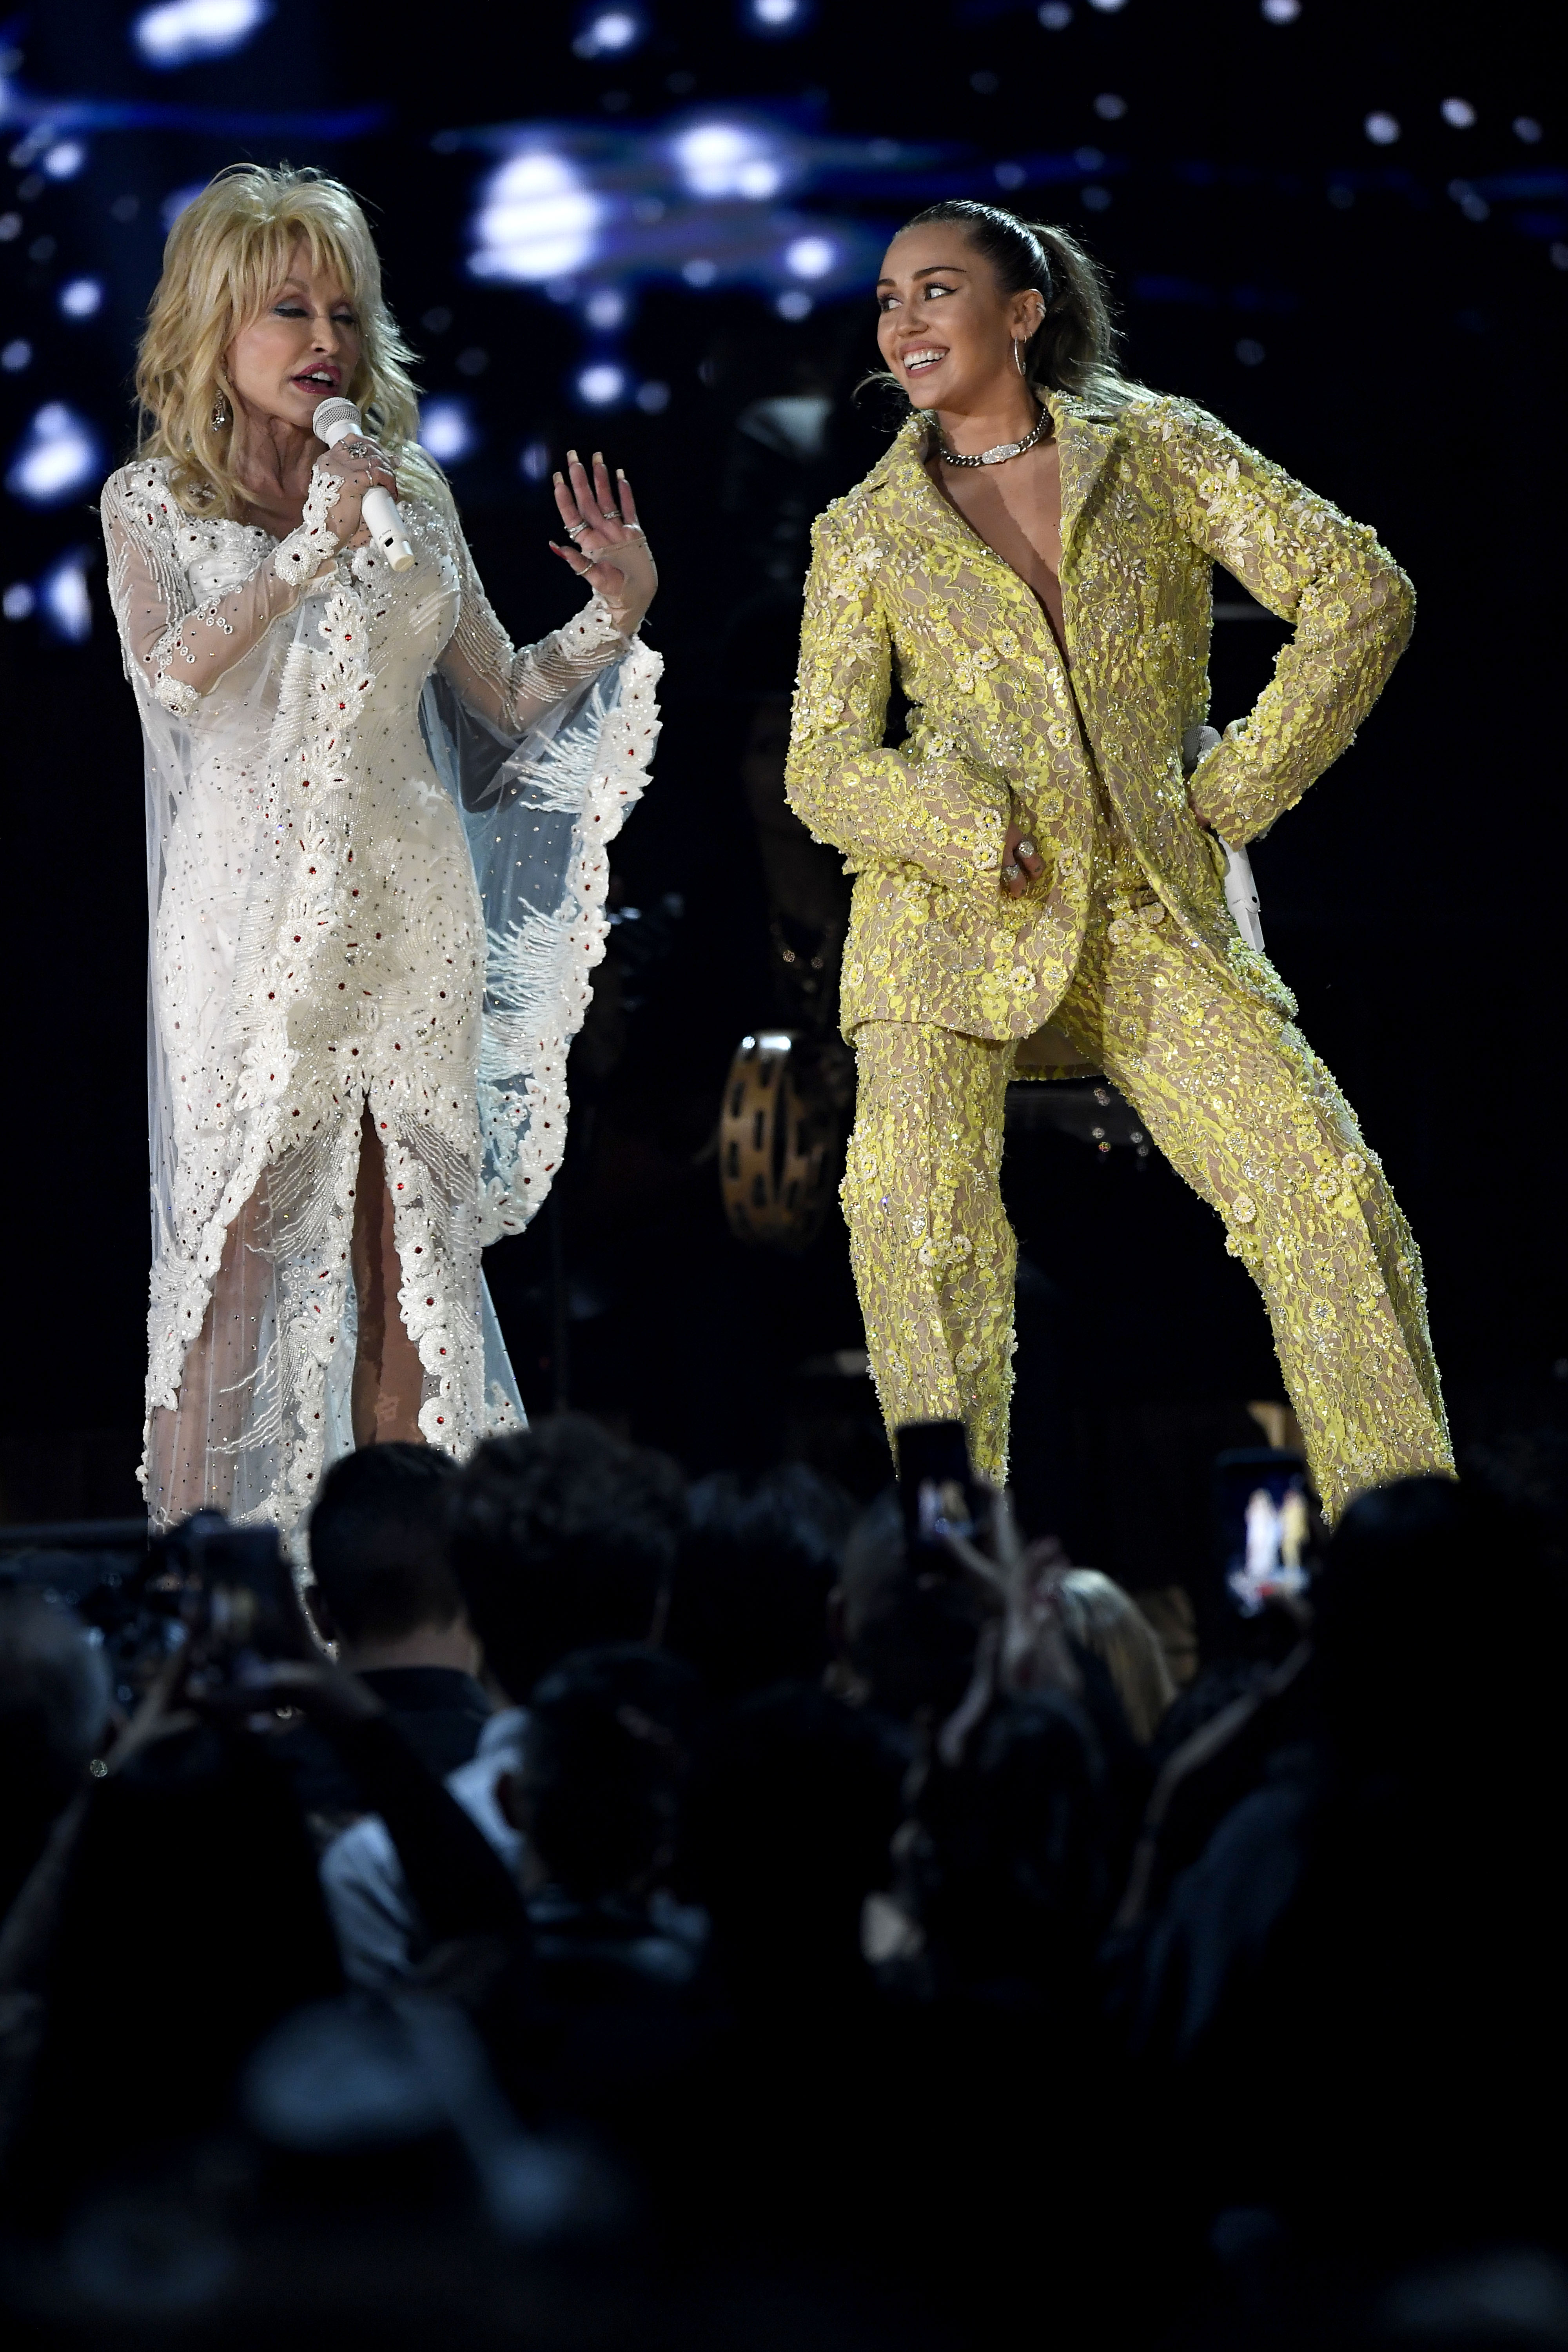 Dolly Parton Rocks The Grammys In Special Performance With Miley Cyrus Katy Perry And Maren Morris Access